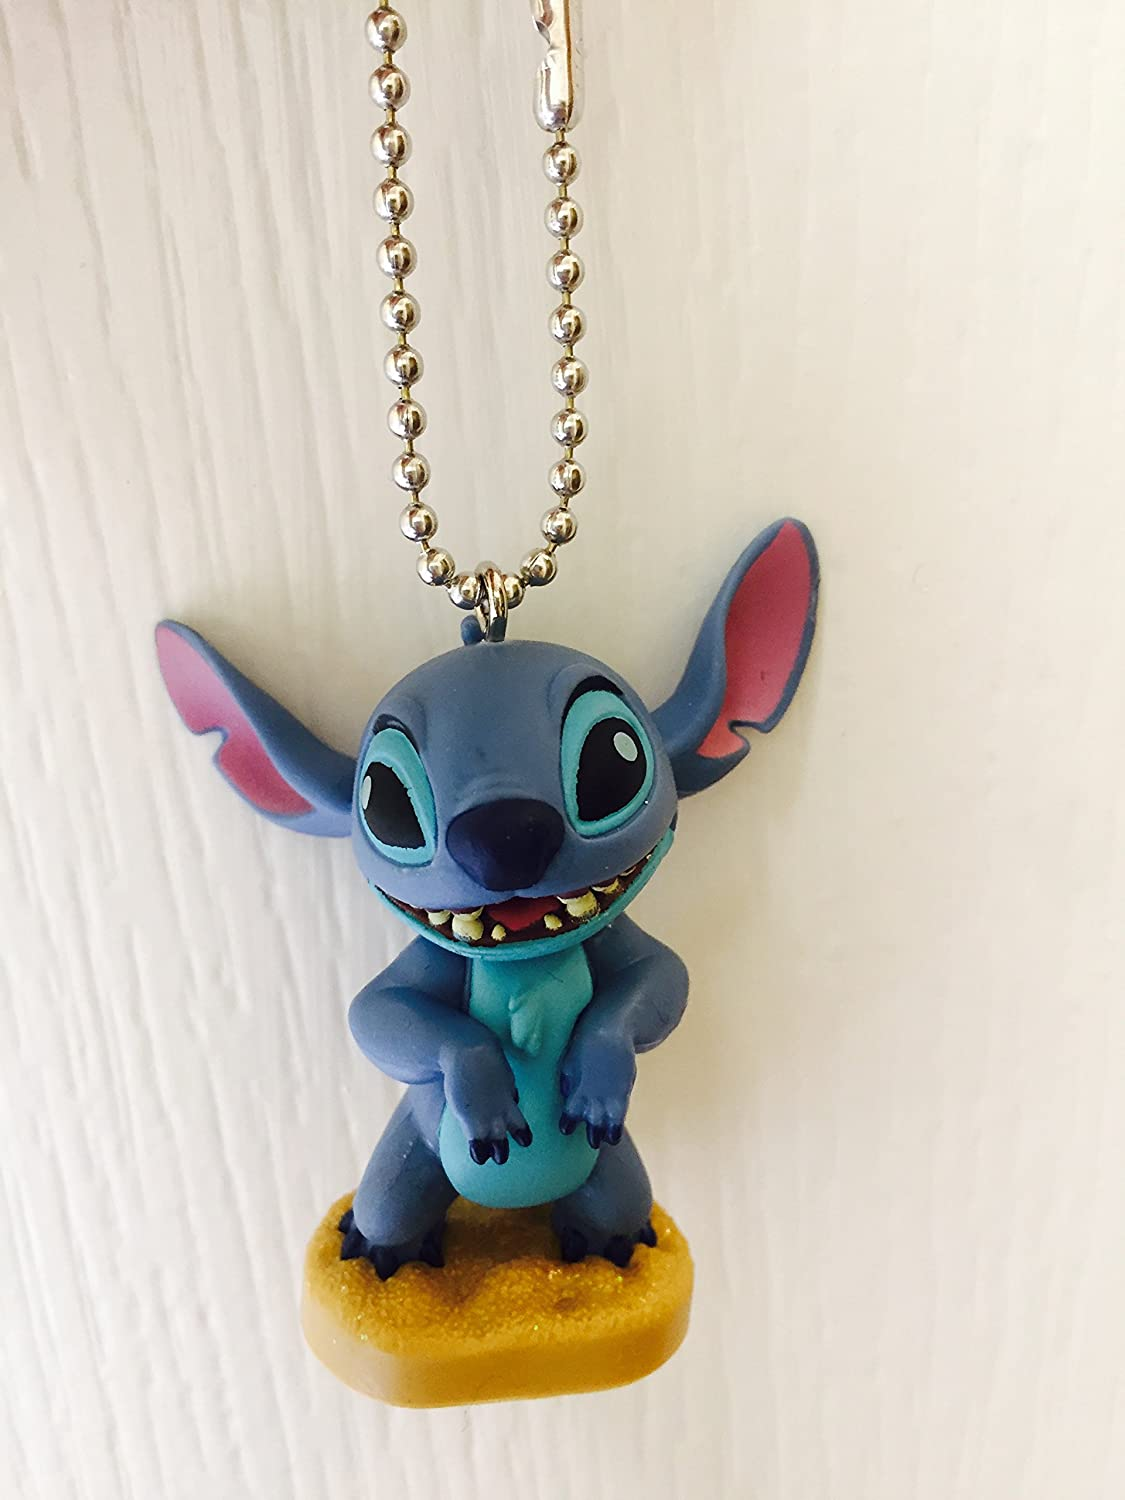 Amazon.com: Disney Lilo & Stitch Hawaiian Hula experimento ...